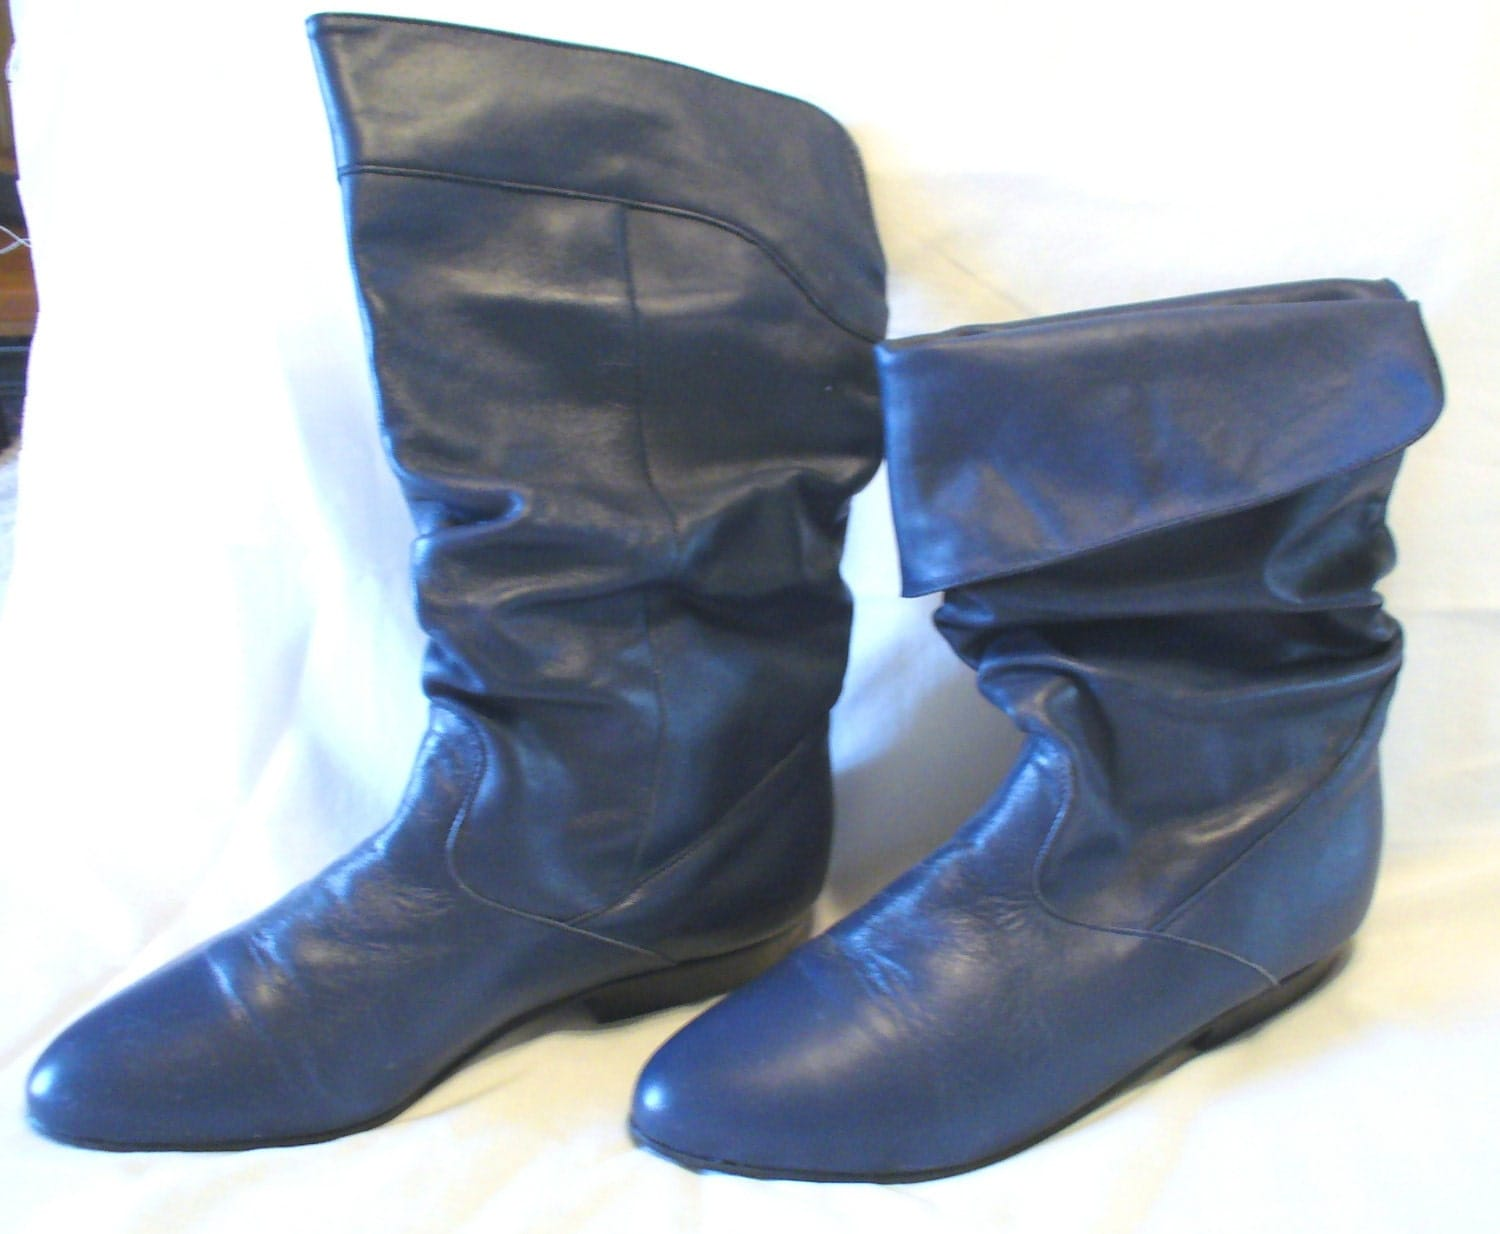 ETSY SHOES Etsy Boots Aj Valenci Navy Blue Leather